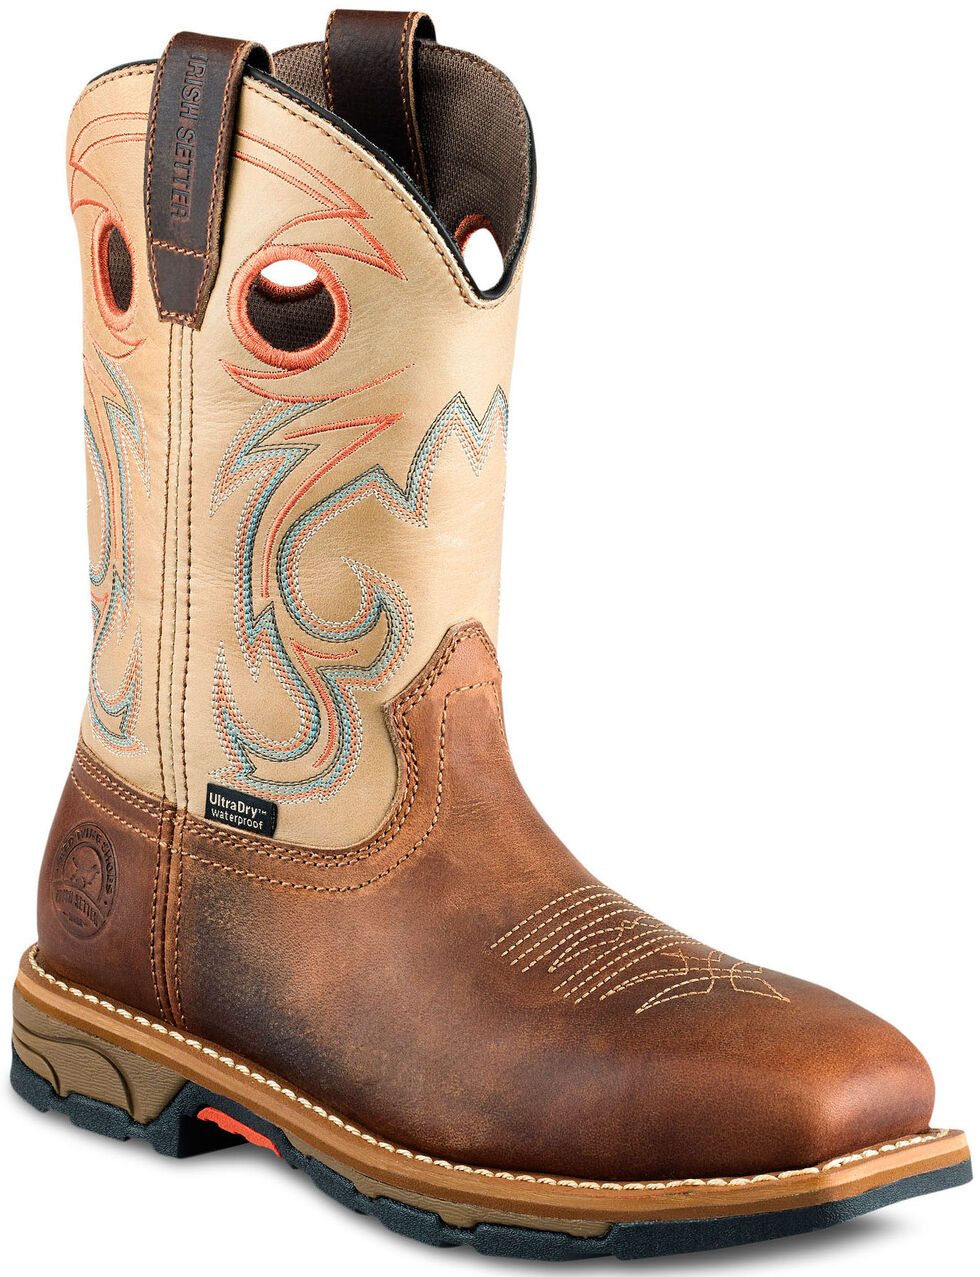 Irish Setter by Red Wing Shoes Women's Tan Marshall Waterproof Work Boots - Steel Toe, Brown, hi-res